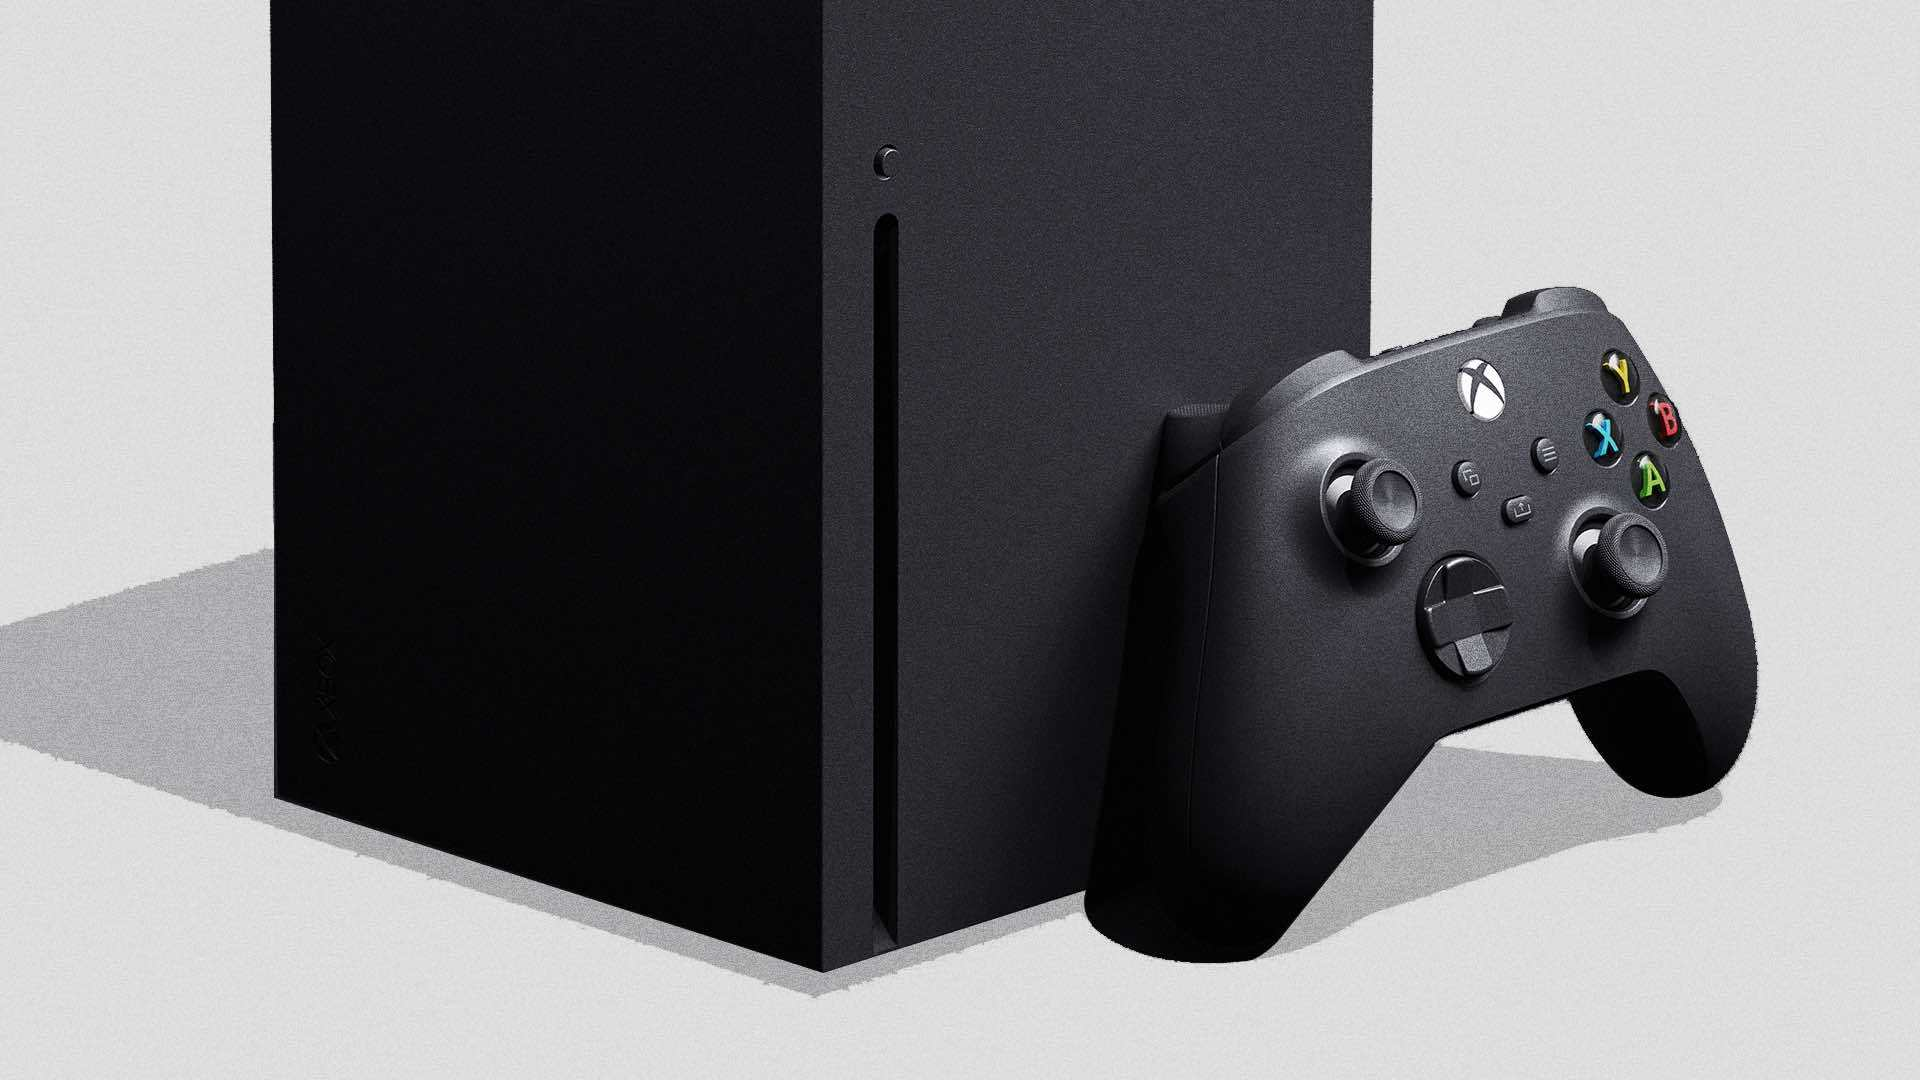 A pair of industry experts says Xbox Series X will be $400 to undercut PS5's price screenshot